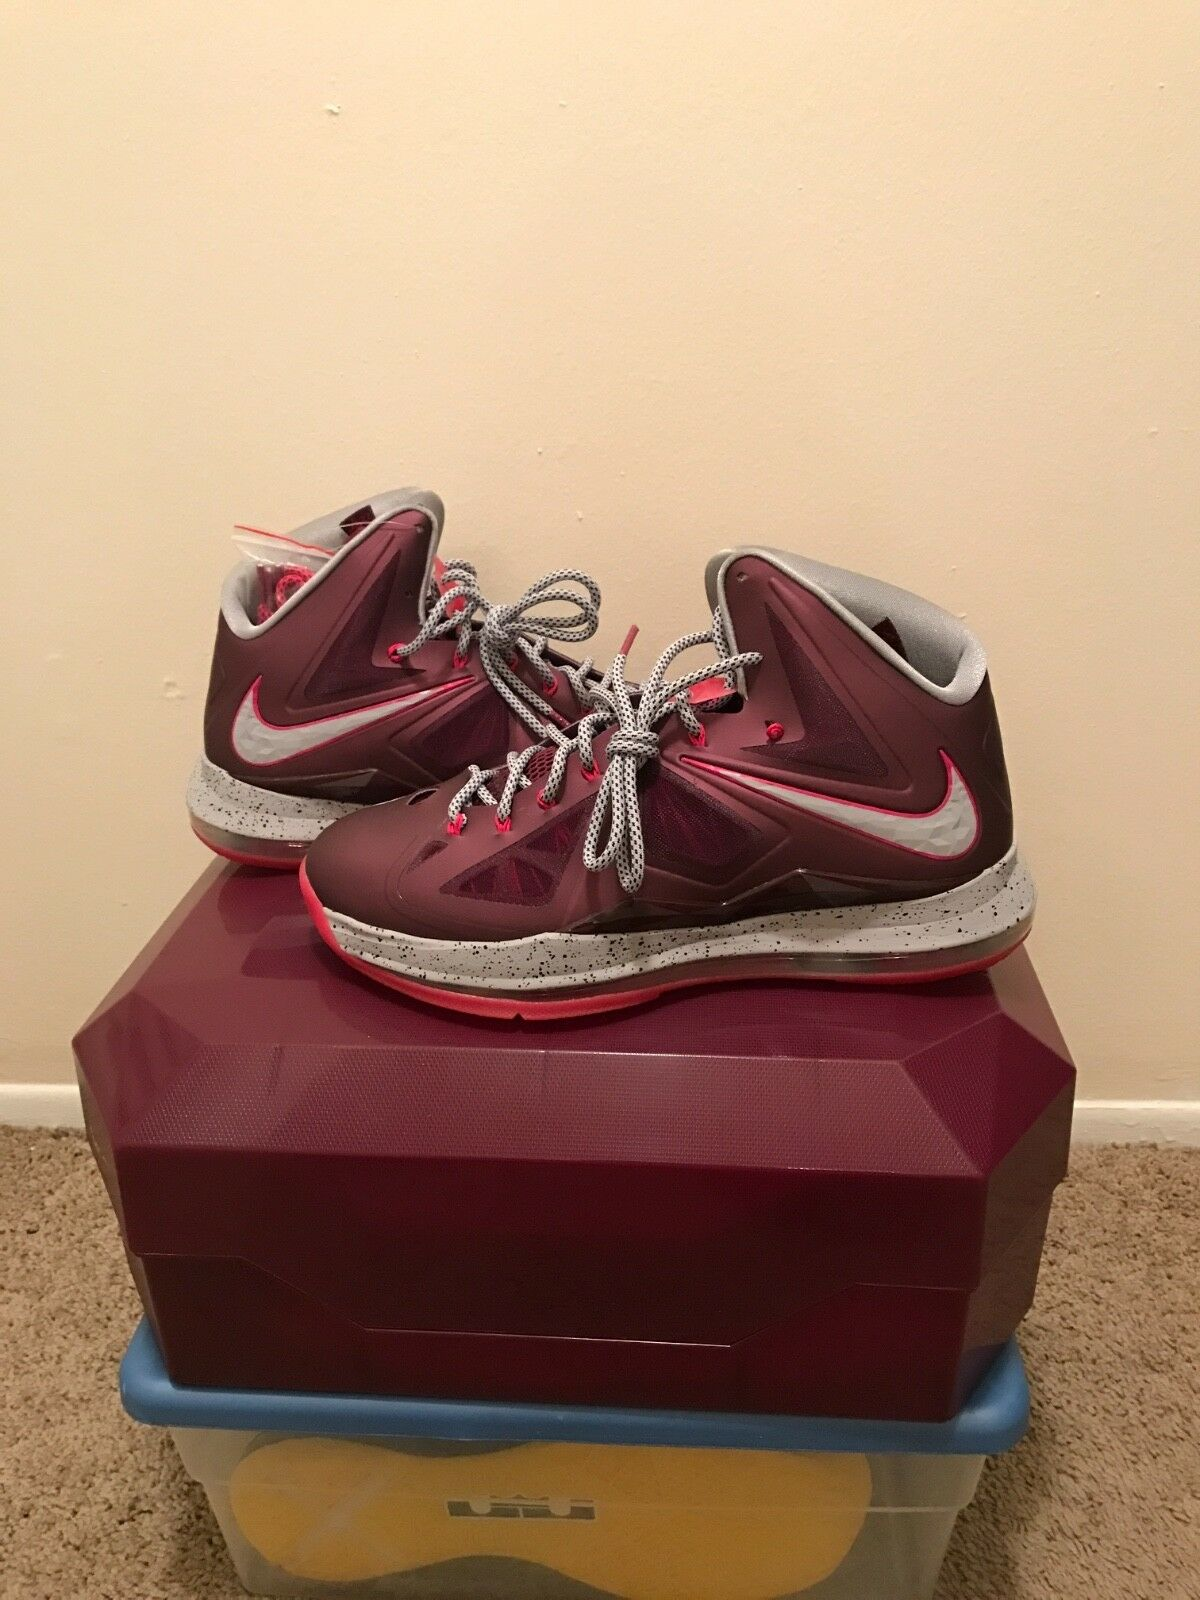 Nike Lebron X Crown Jewels Size 12 D.S 100% Authentic